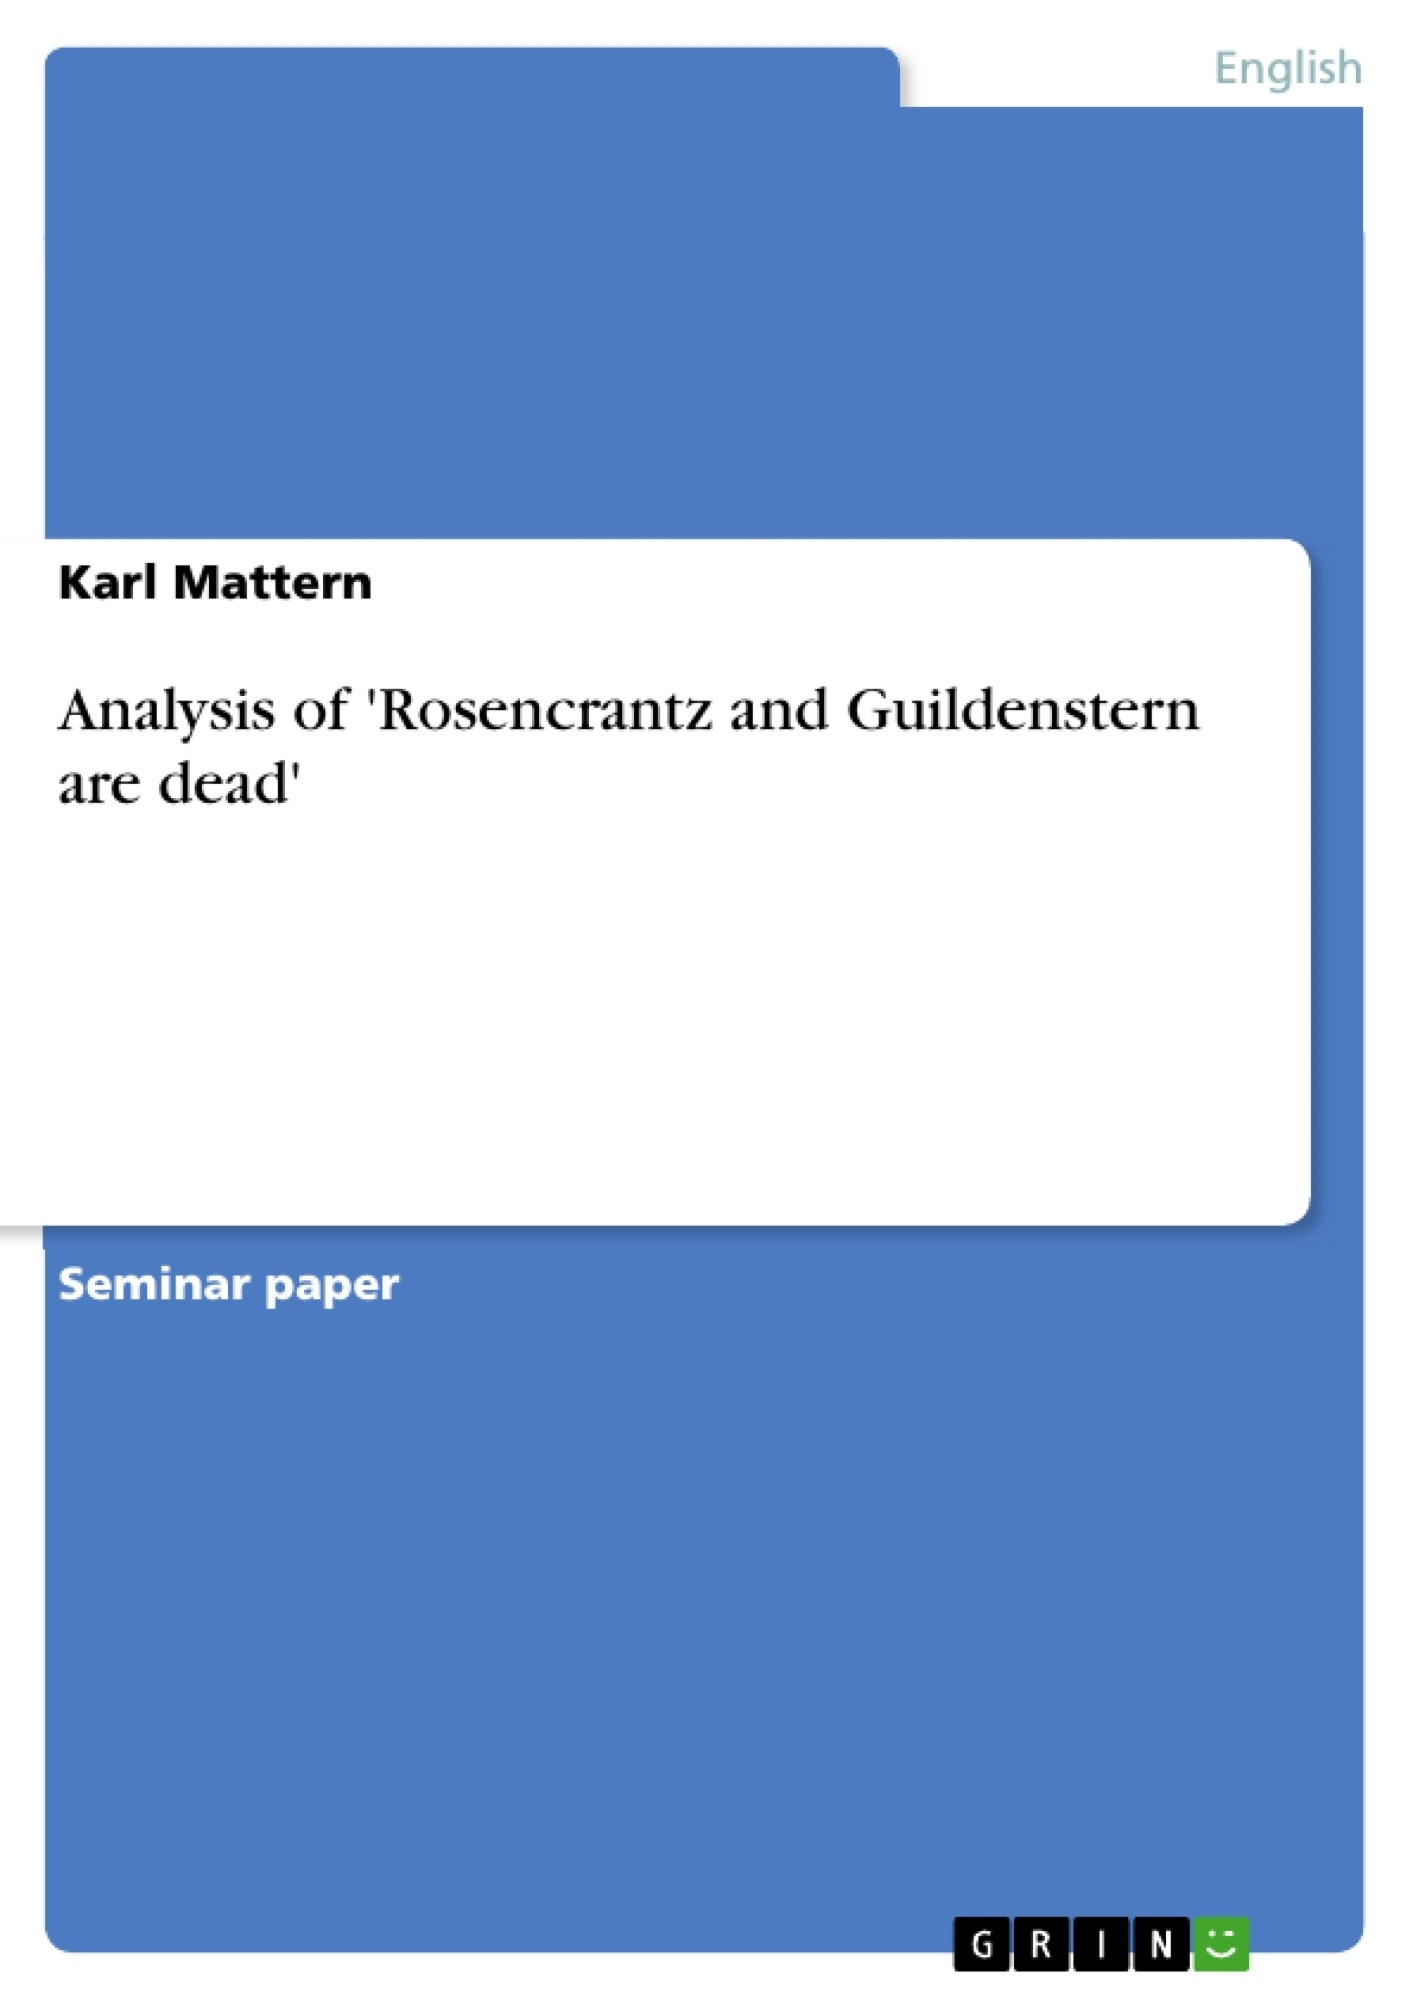 an analysis of rosencrantz and guildenstern are dead by allem merani From a general summary to chapter summaries to explanations of famous quotes , the sparknotes rosencrantz and guildenstern are dead study guide has.